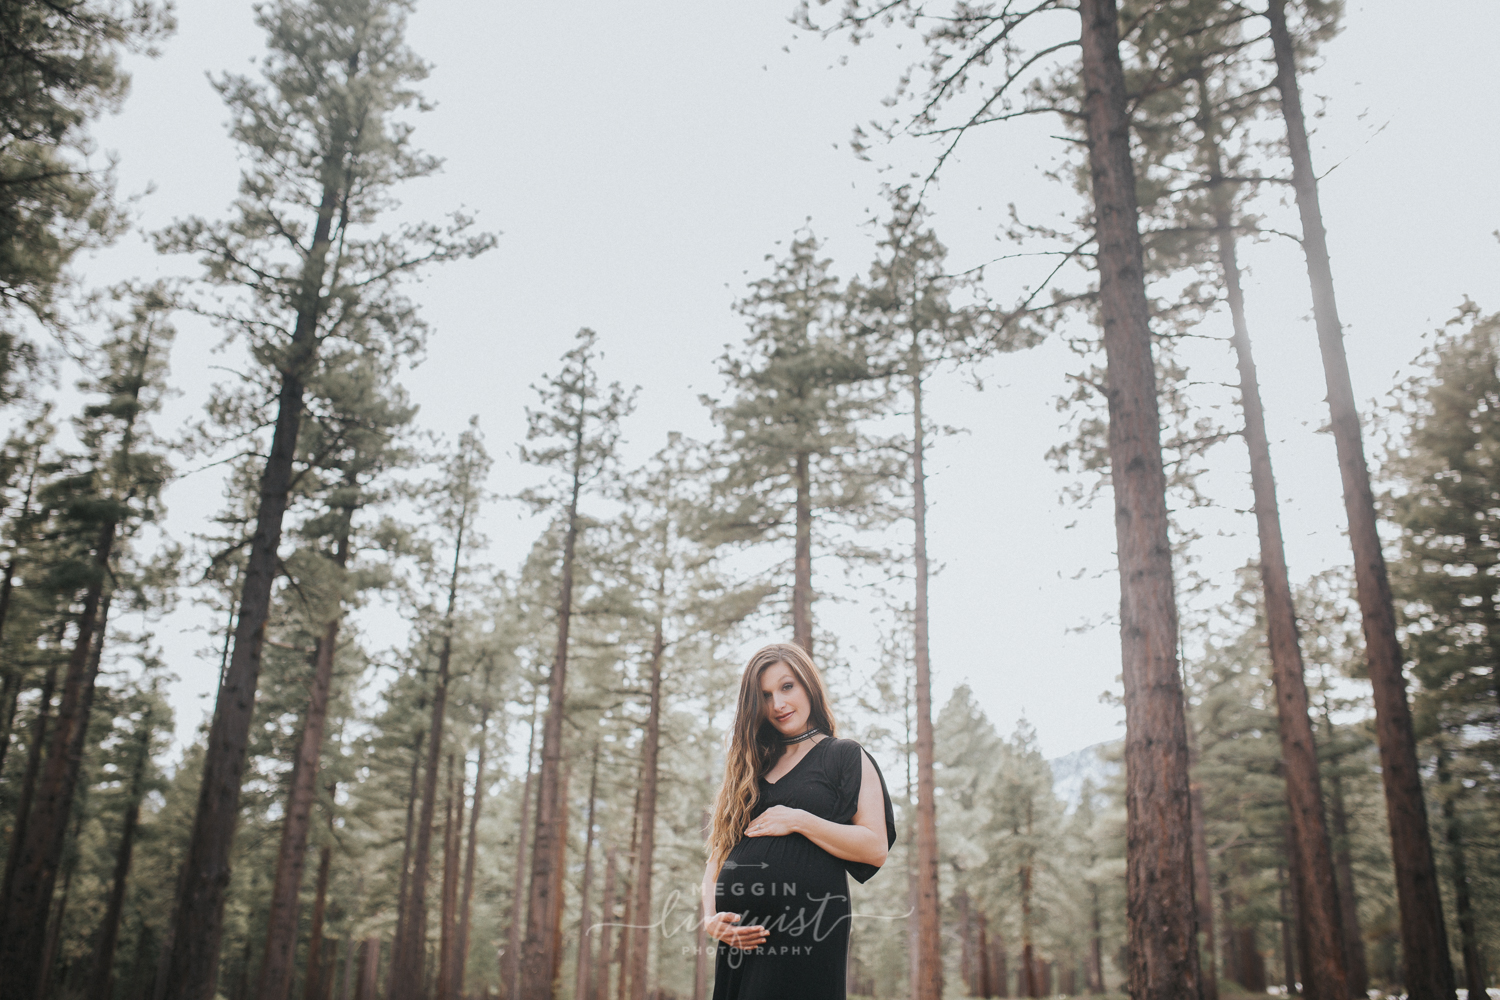 galena-maternity-session-reno-lake-tahoe-photographer-11.jpg